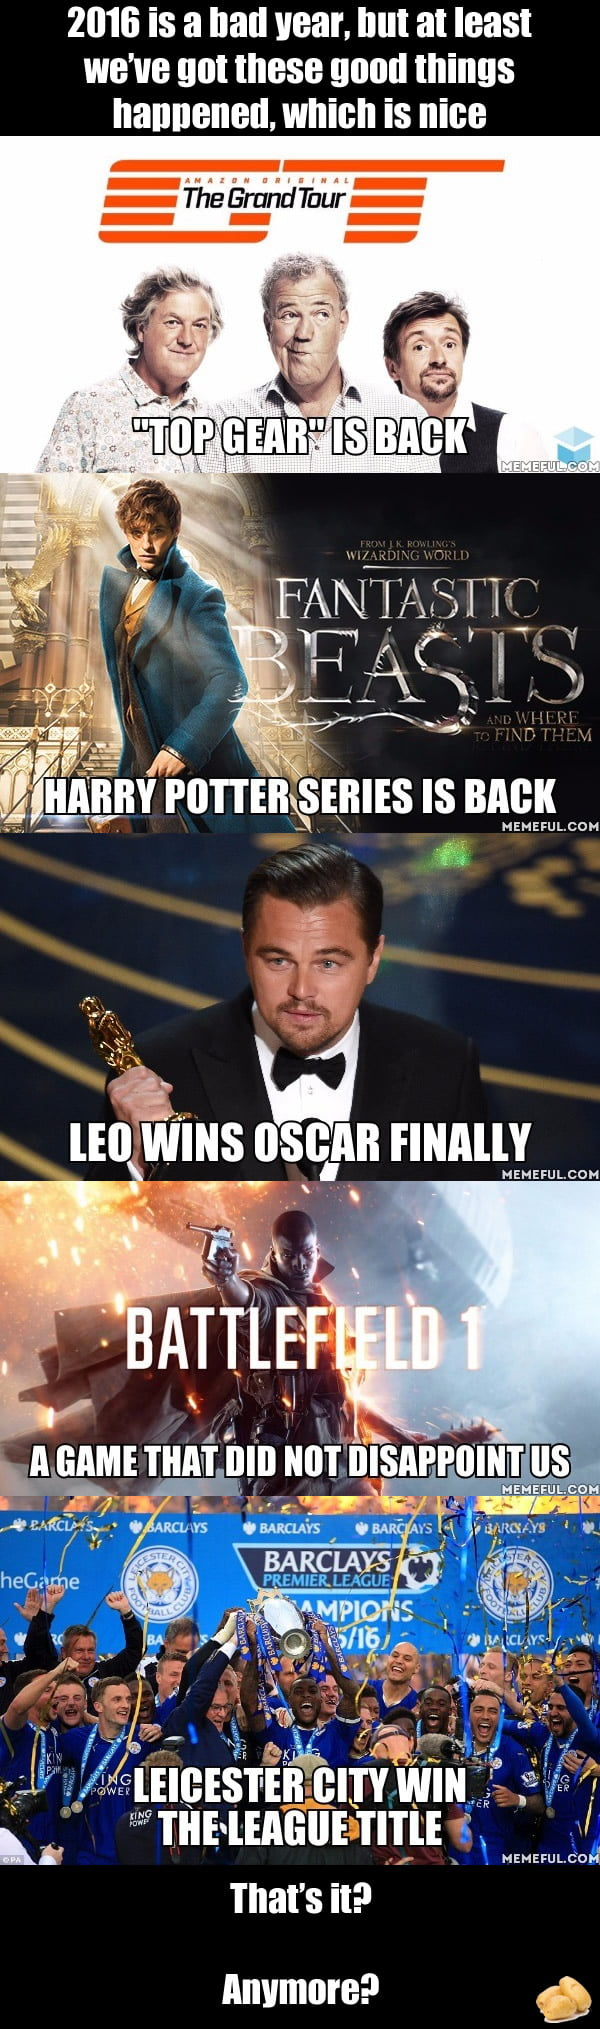 Ask 9GAG: What are the good things we have in 2016?